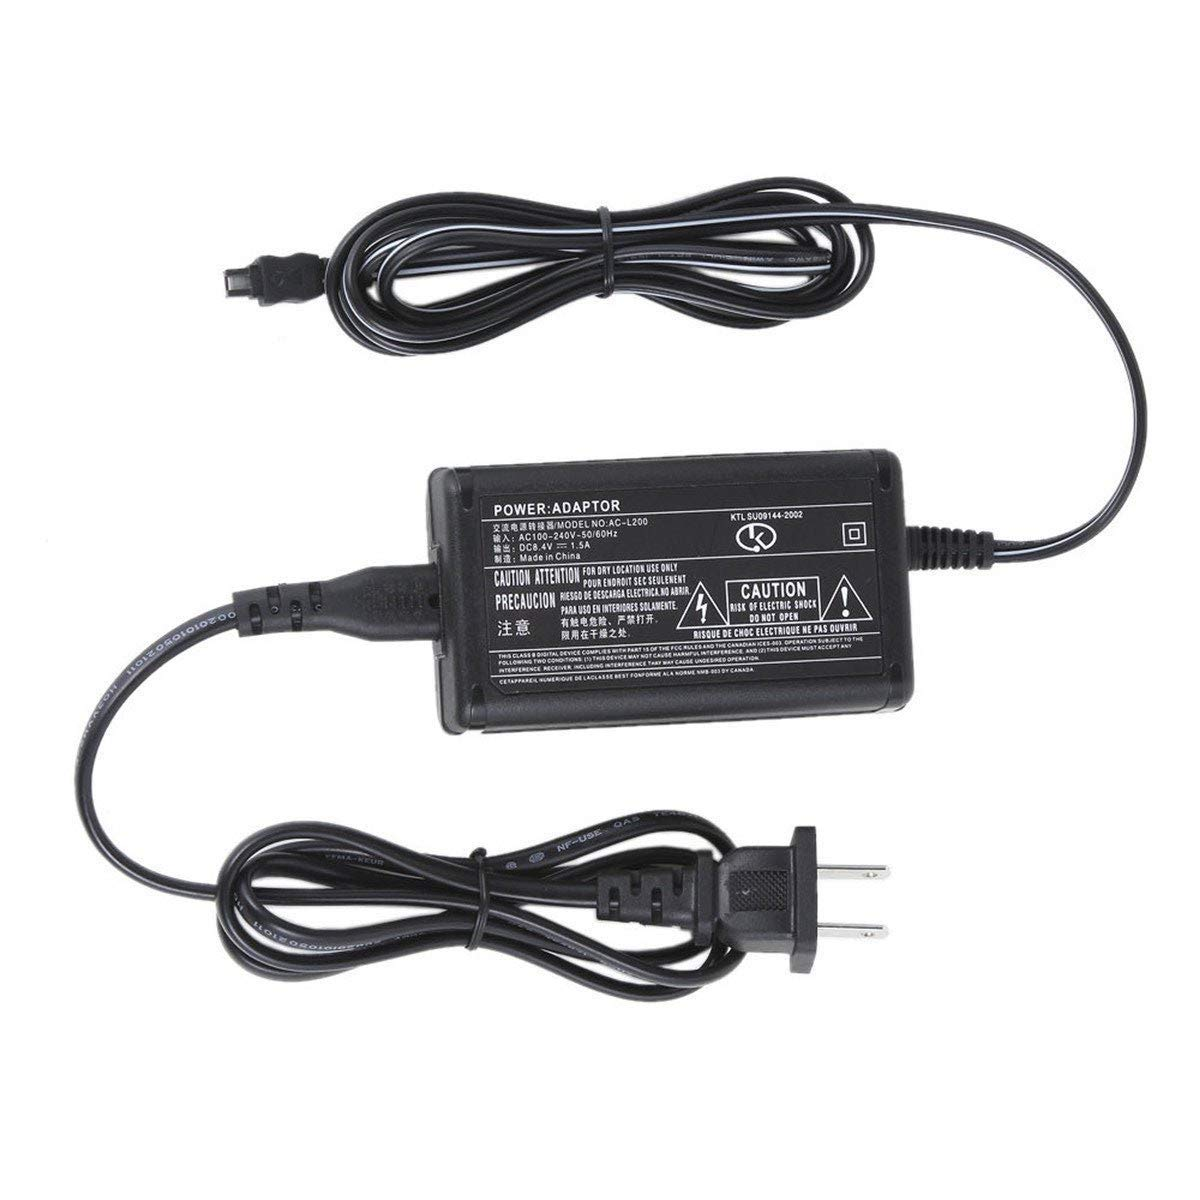 Antoble AC Adapter Charger for Sony Handycam DCR-SX40 DCR-SX43 DCR-SX44 DCR-SX45 DCRSX45 Power Supply anttrades L25B-A2